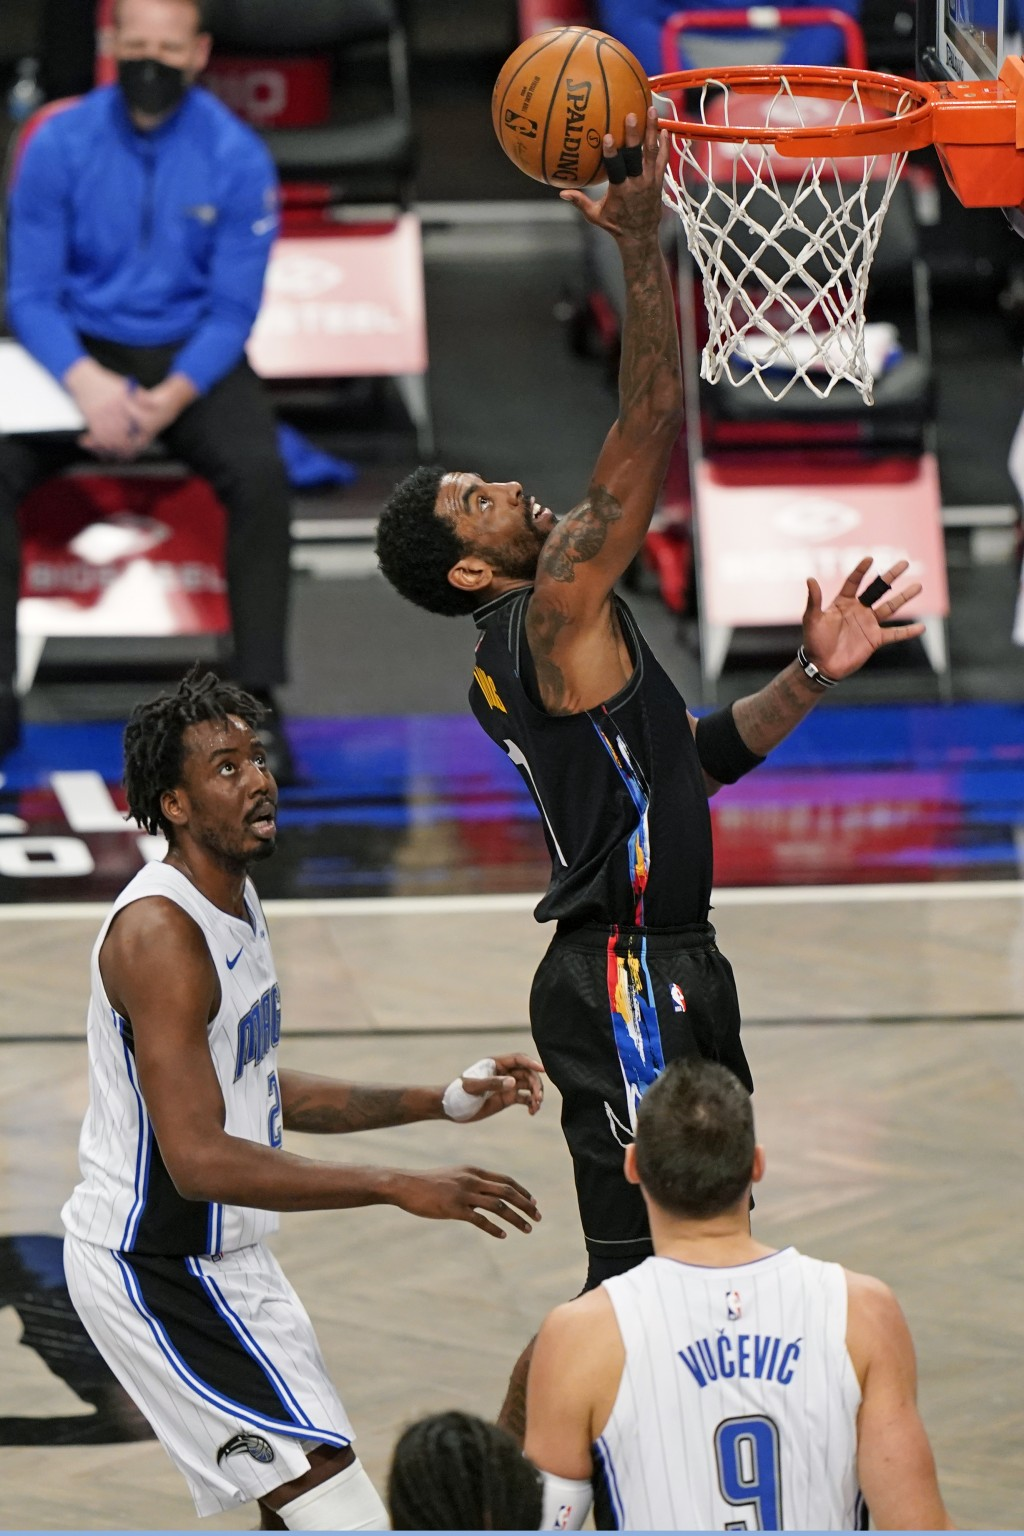 Brooklyn Nets guard Kyrie Irving (11) tries to tip the ball in as Orlando Magic forward Al-Farouq Aminu (2) and center Nikola Vucevic (9) look on duri...